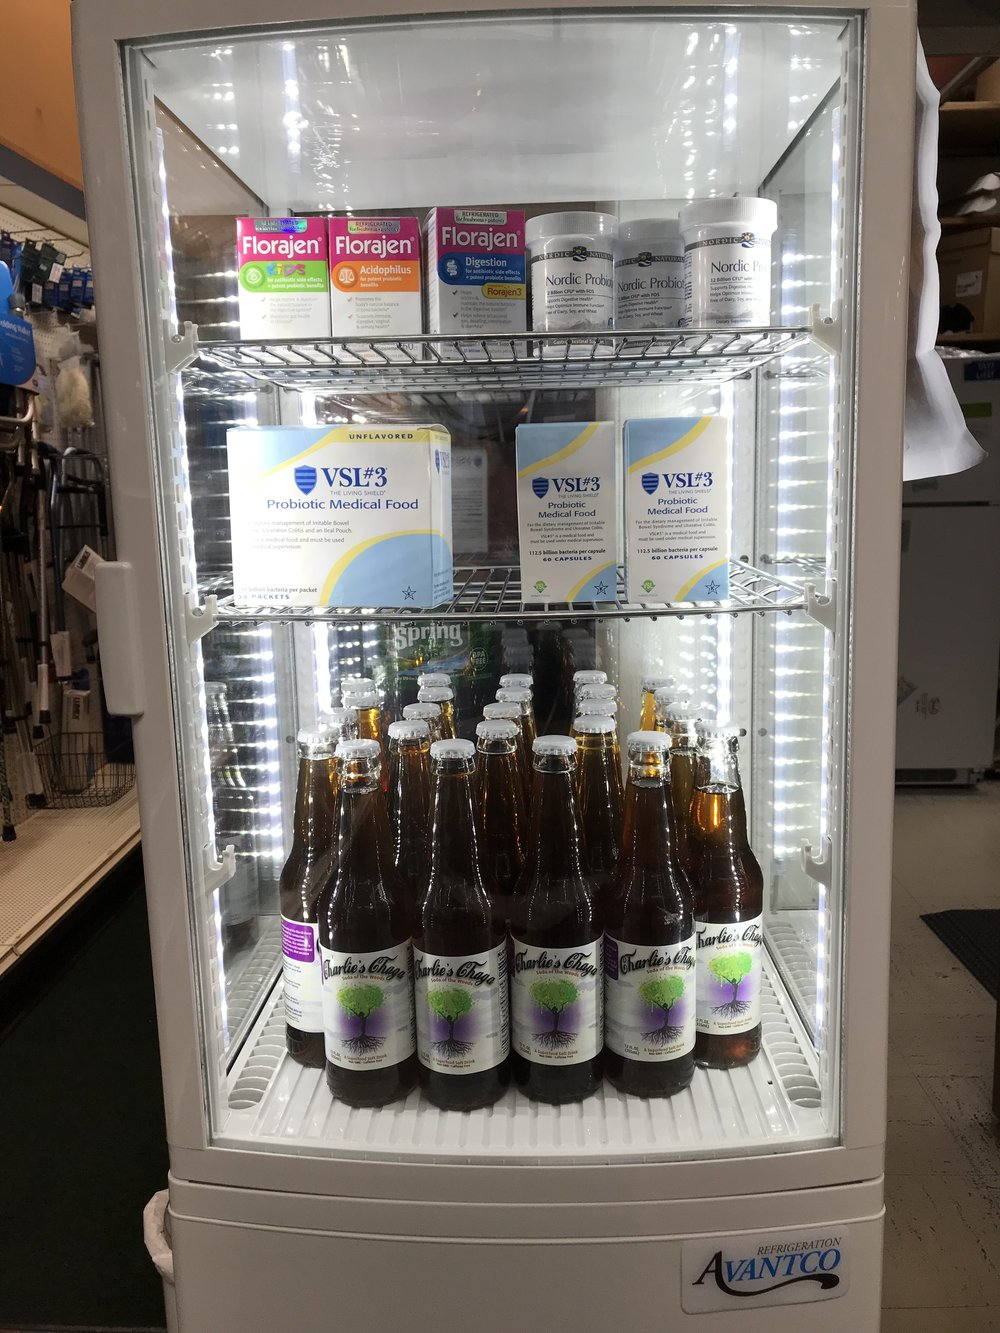 Cool New Section! - Here's to your health! Look in our new refrigerator to find refreshing Charlie's Chaga Soda and premium probiotics.